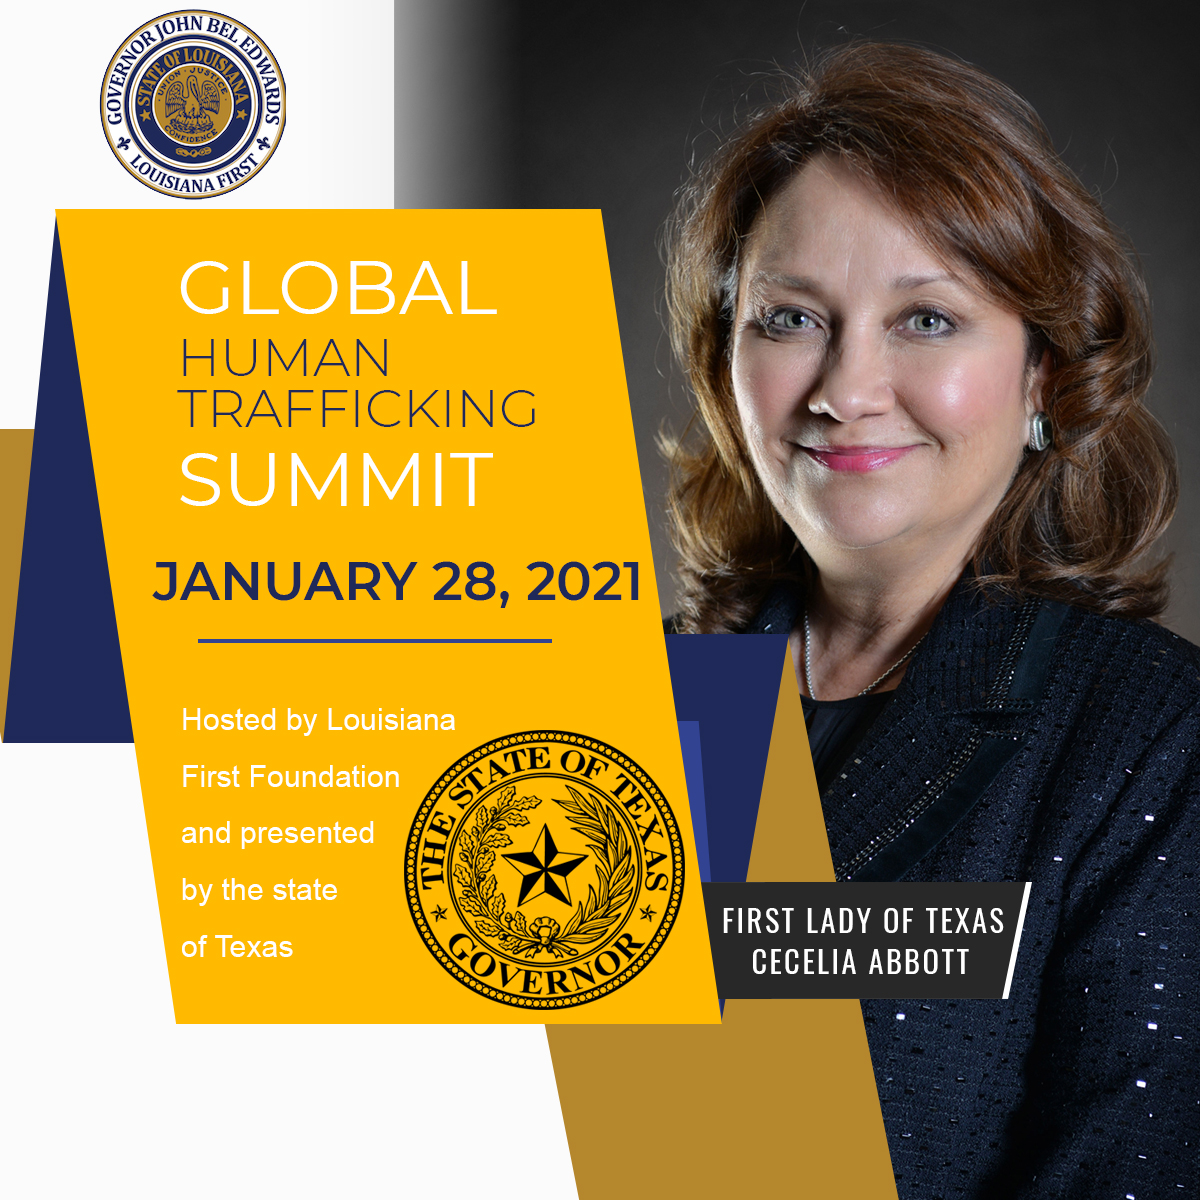 Global Human Trafficking Summit 2021